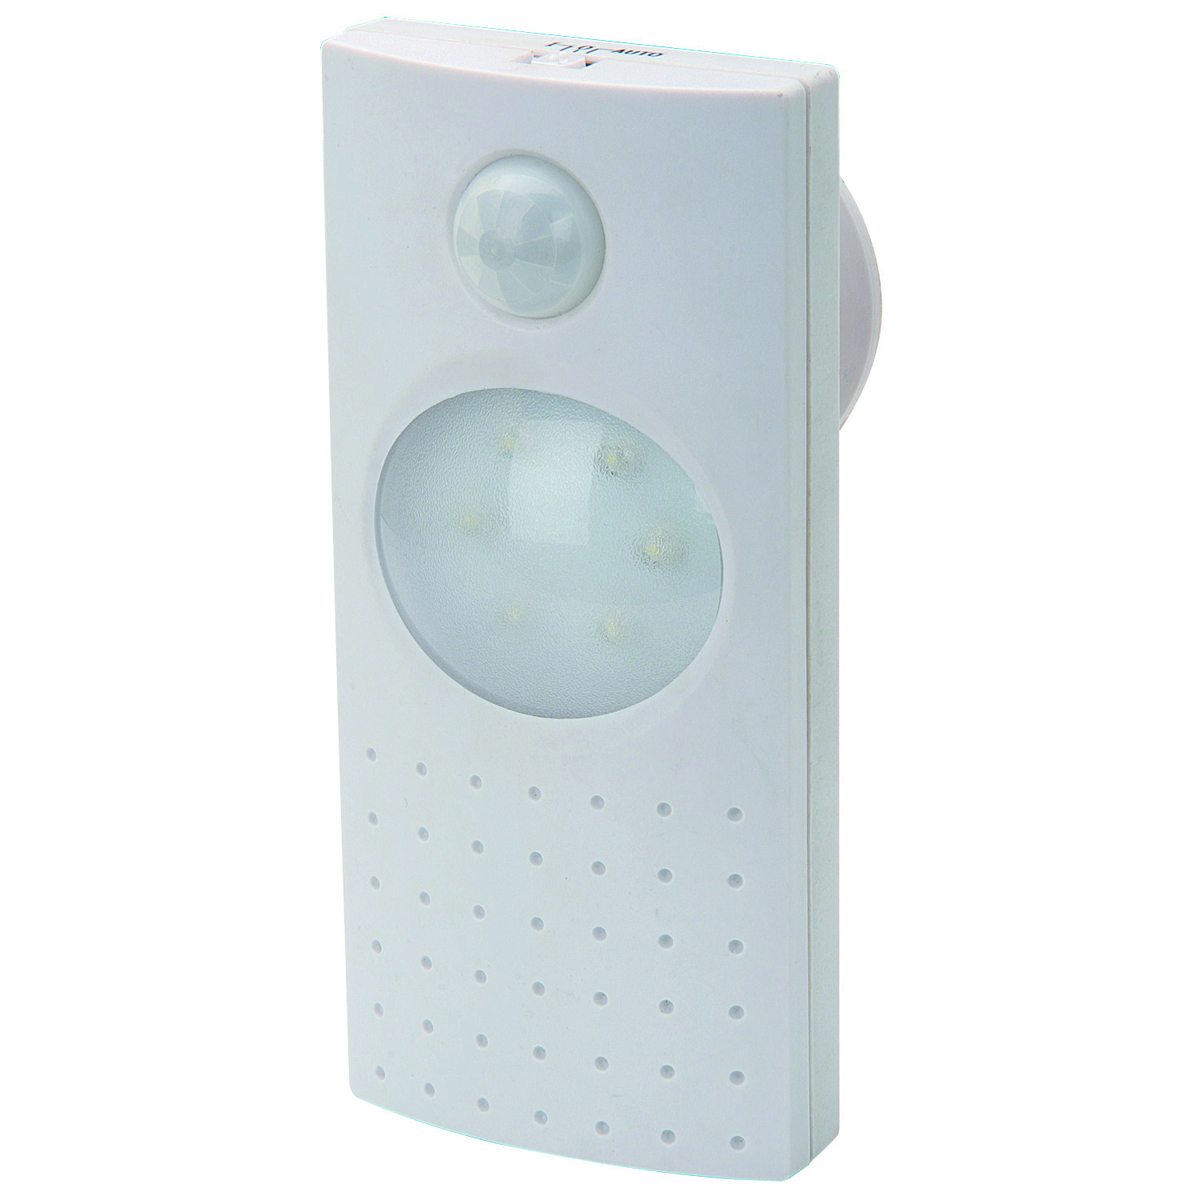 Led motion activated security light mozeypictures Image collections